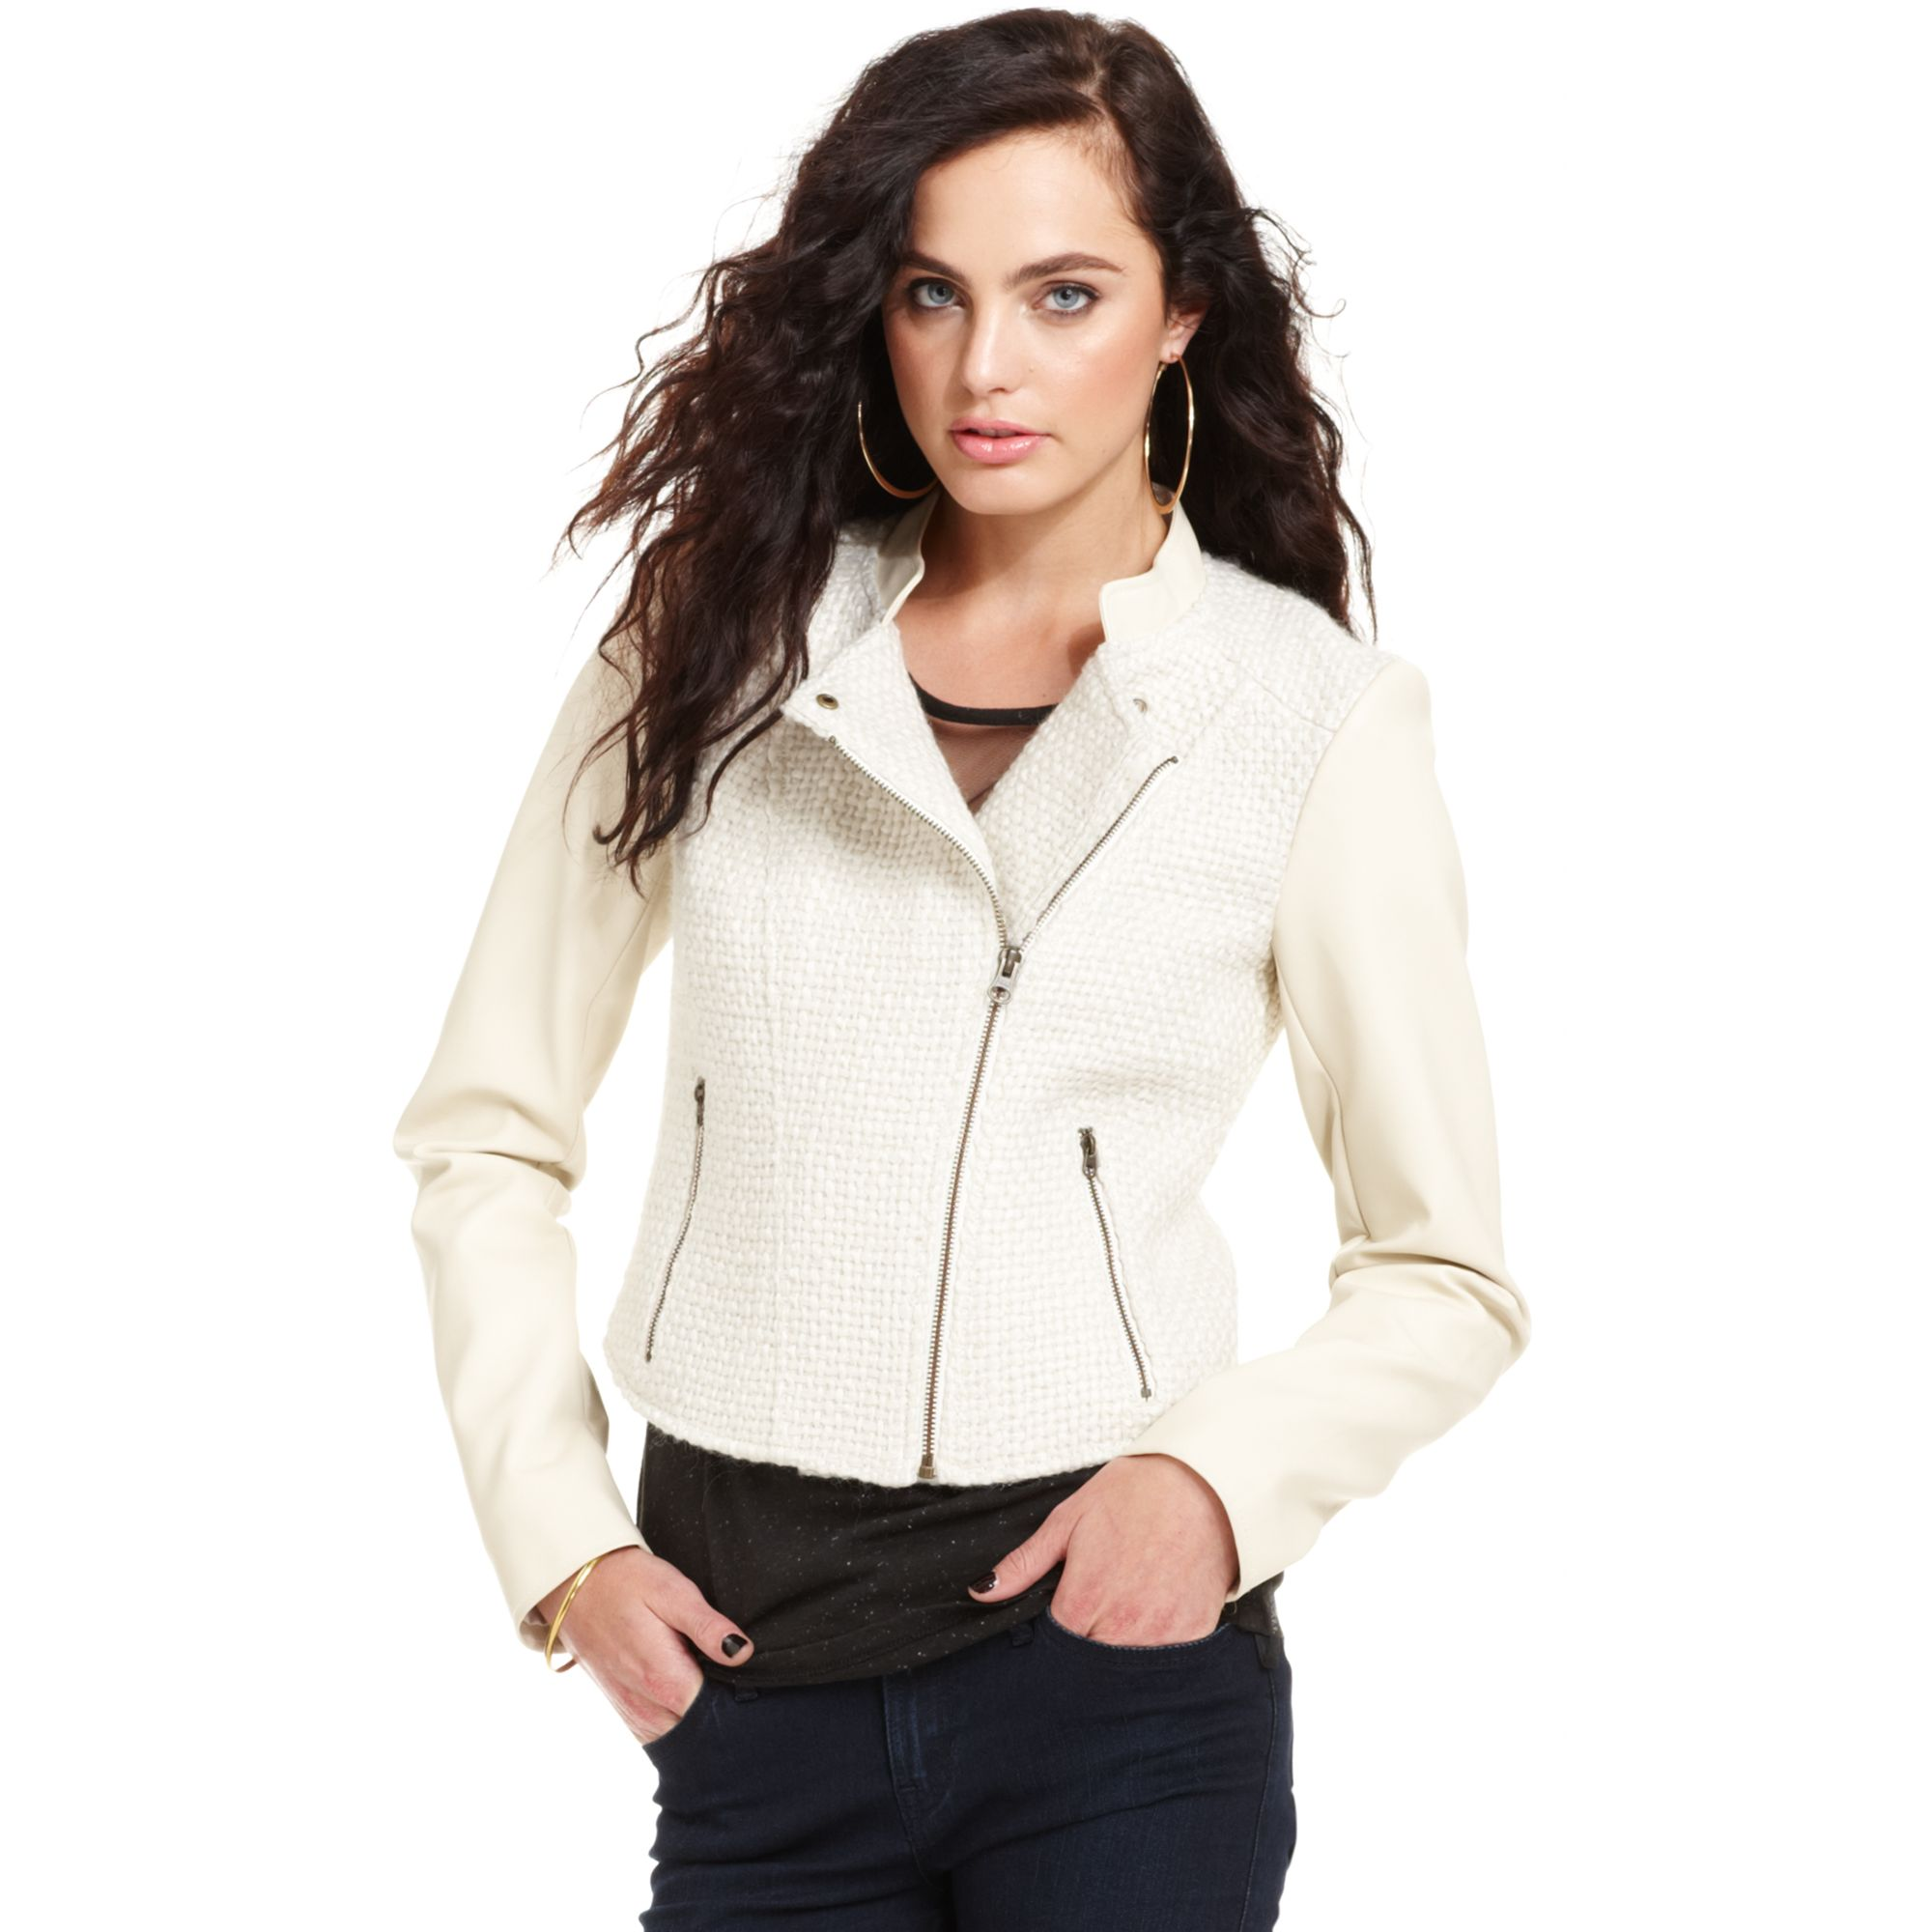 Guess white leather jacket